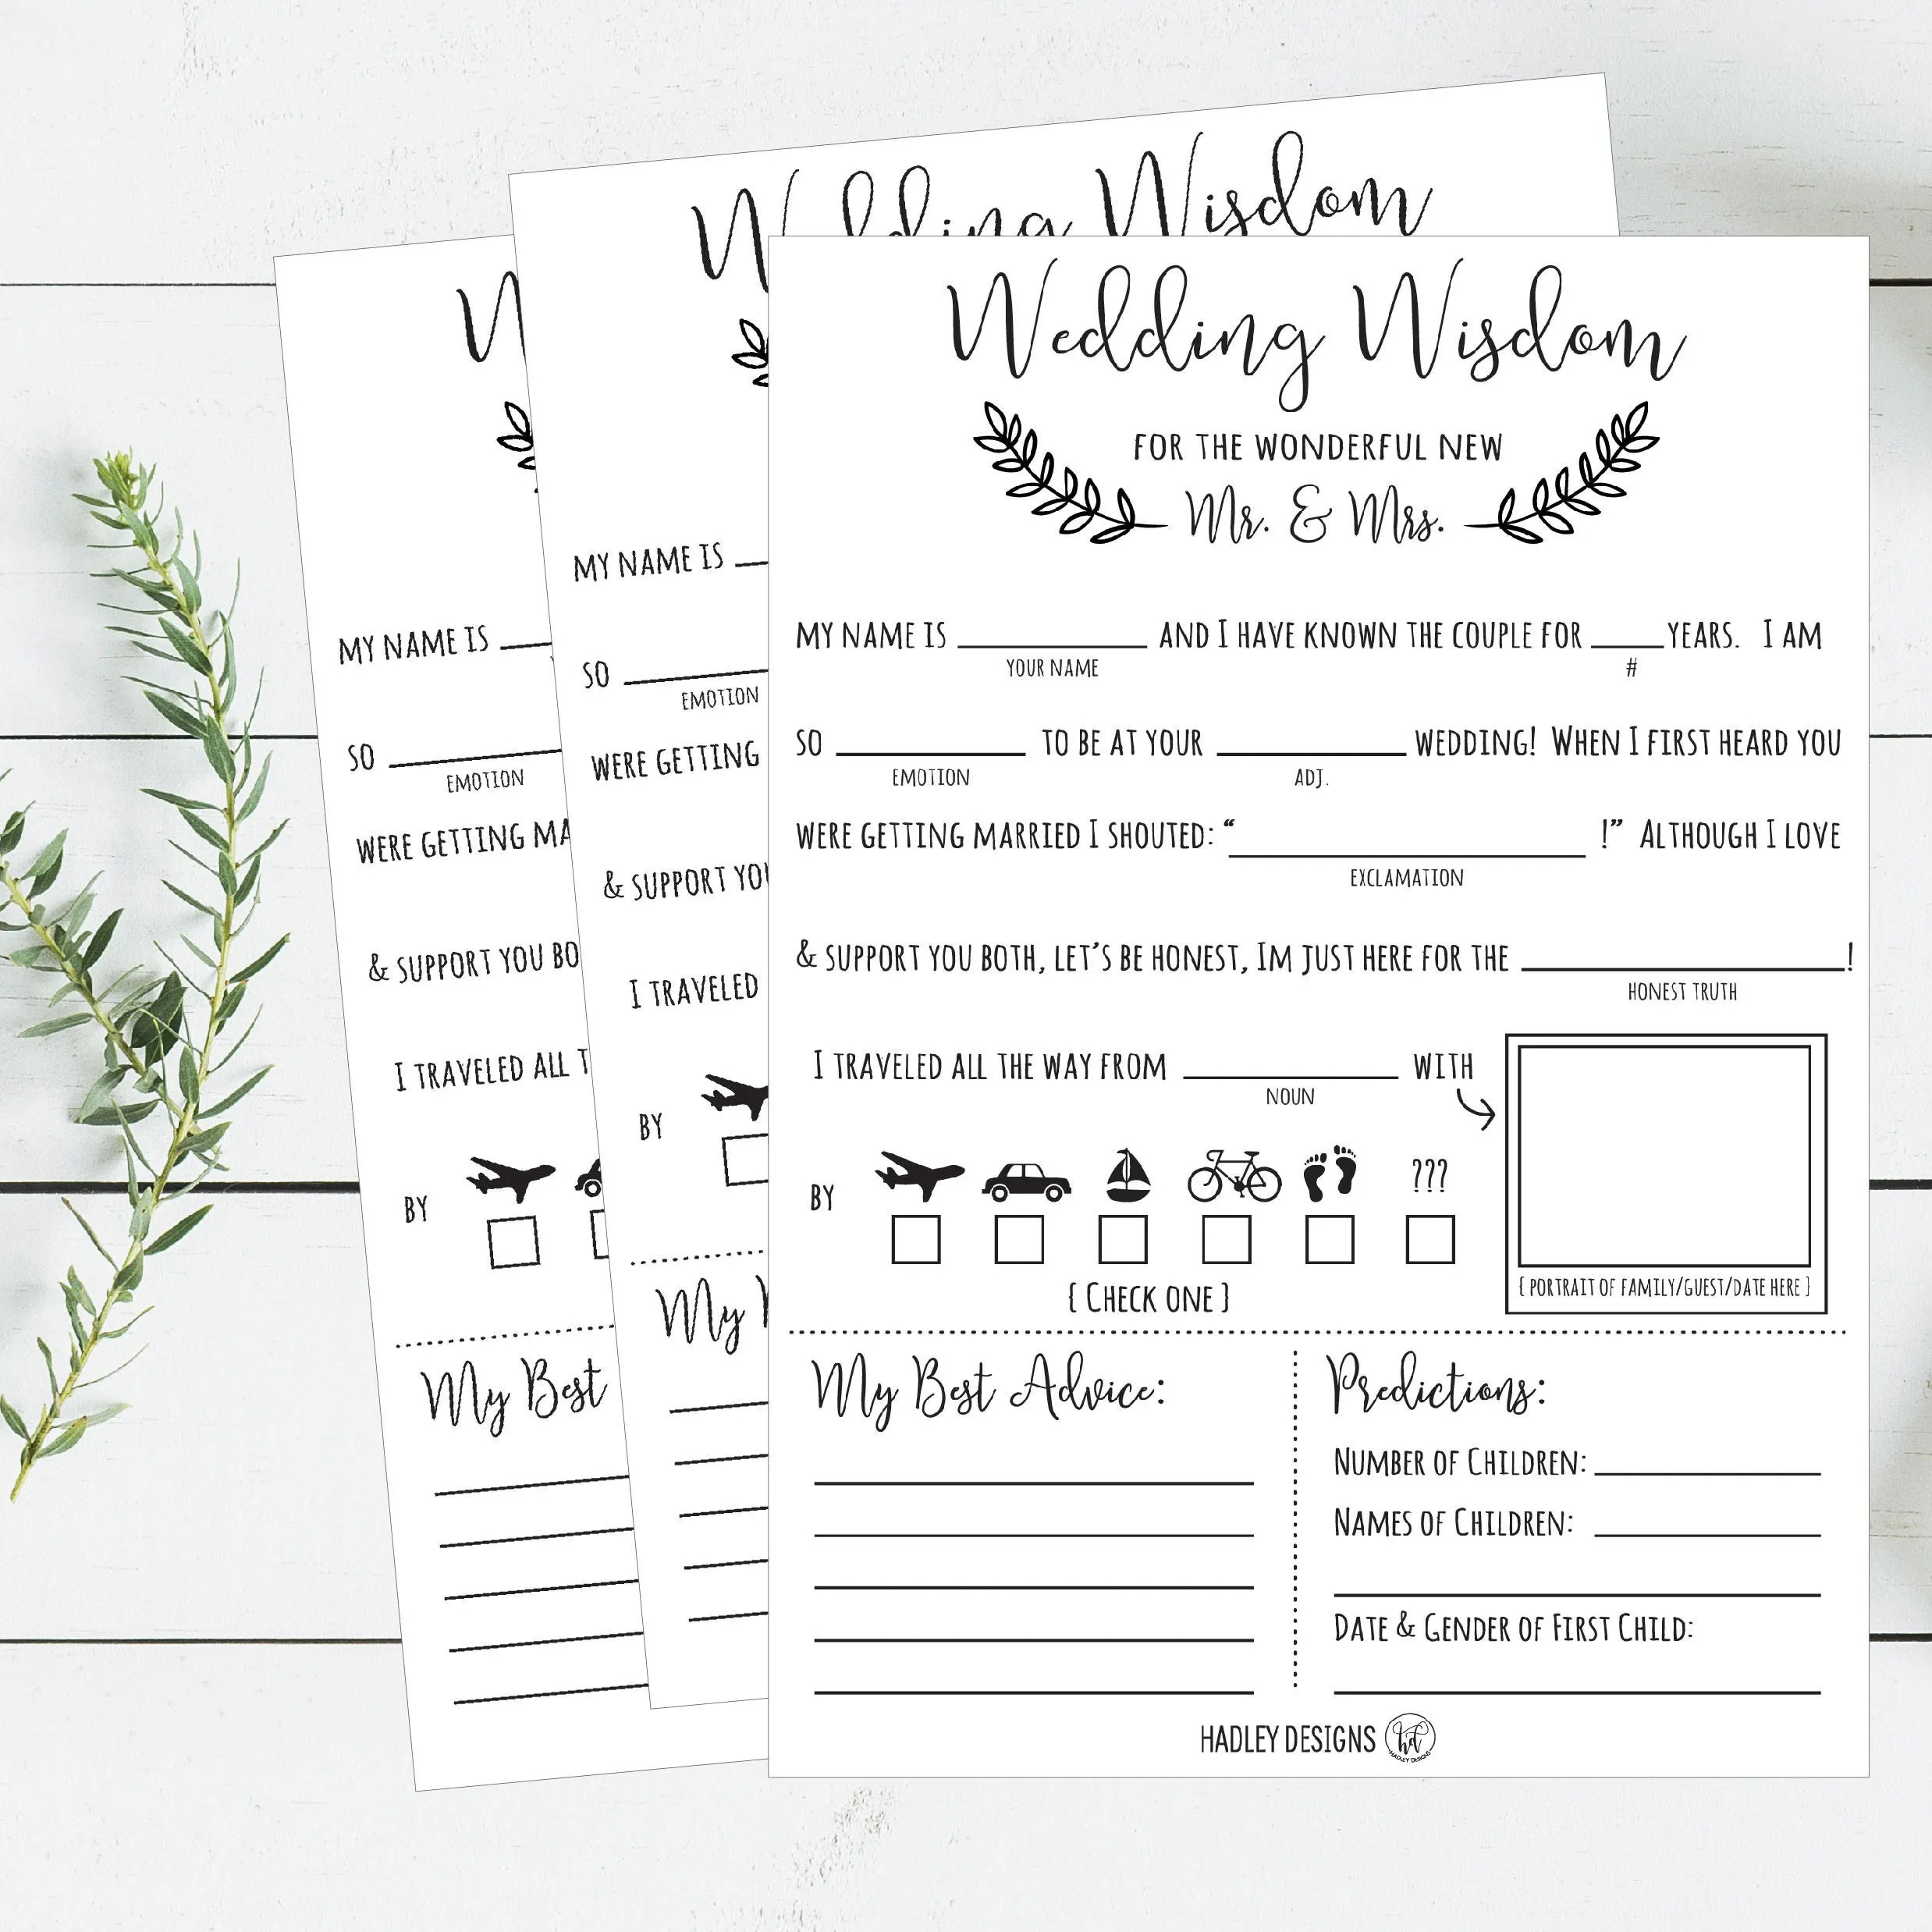 Mad libs Wedding Wisdom Printable Cards Rustic Elegant